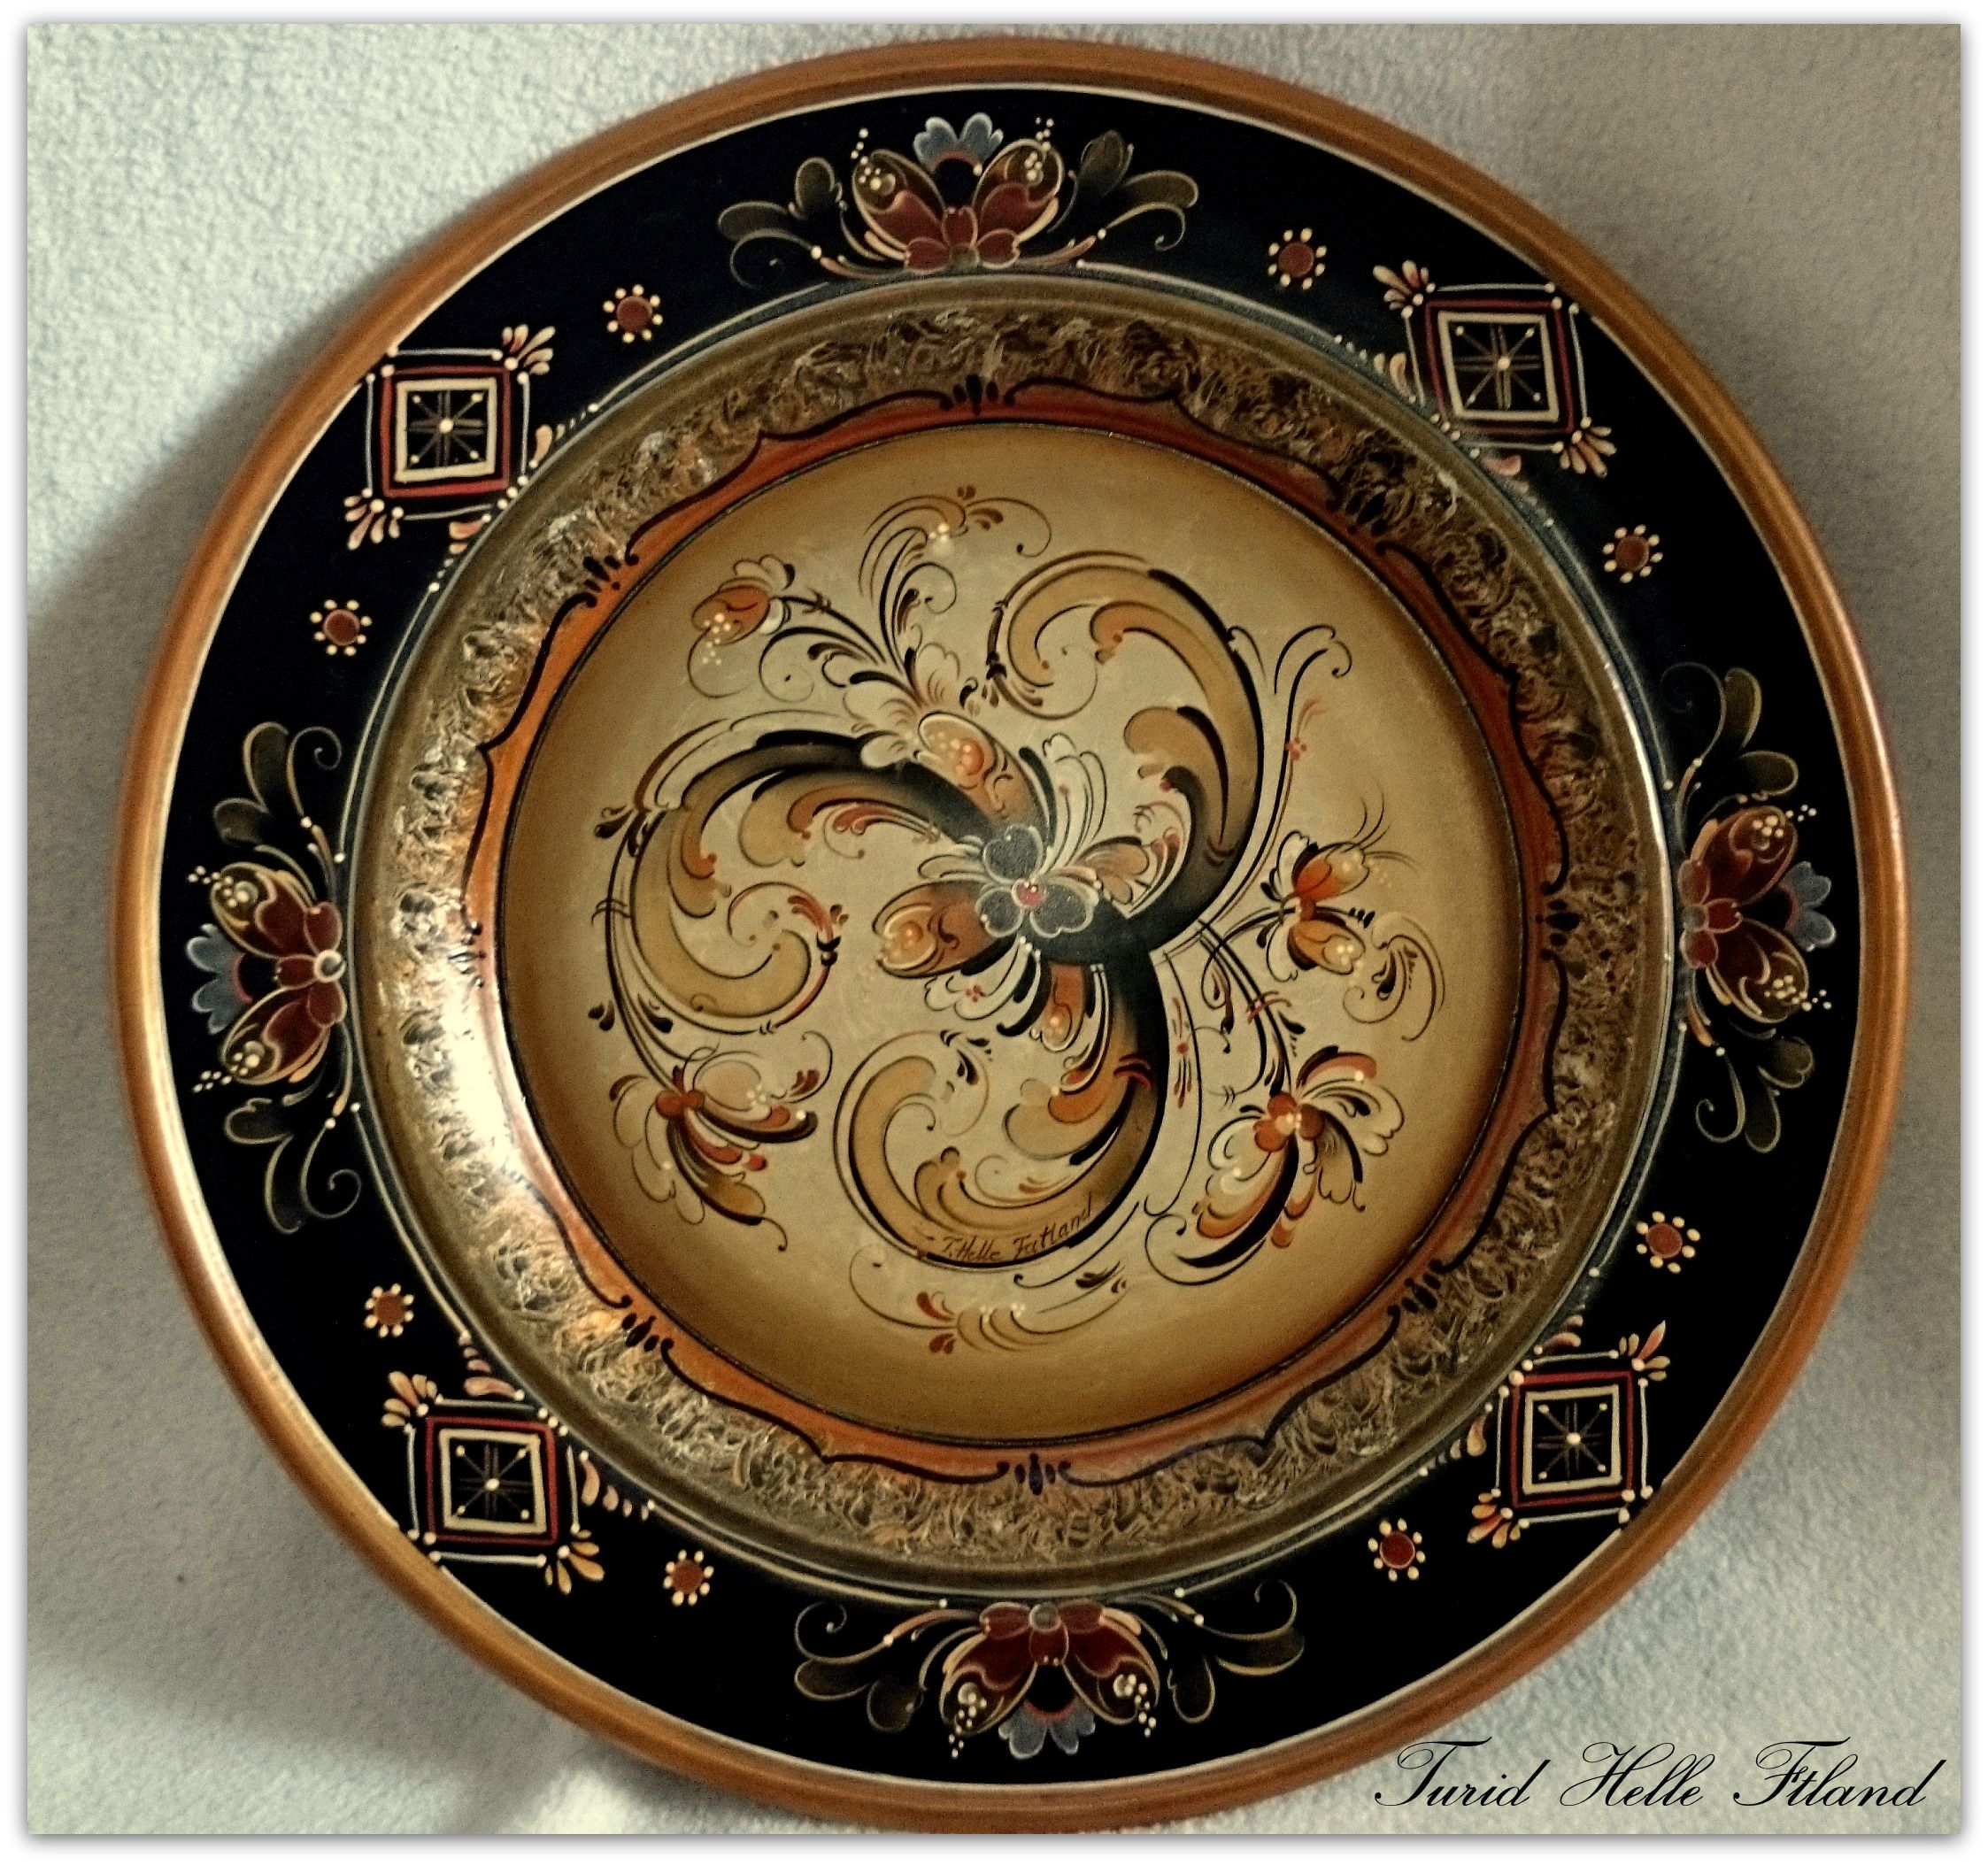 Plate painted in Telemarkstyle by Turid Helle Fatland, Norway.